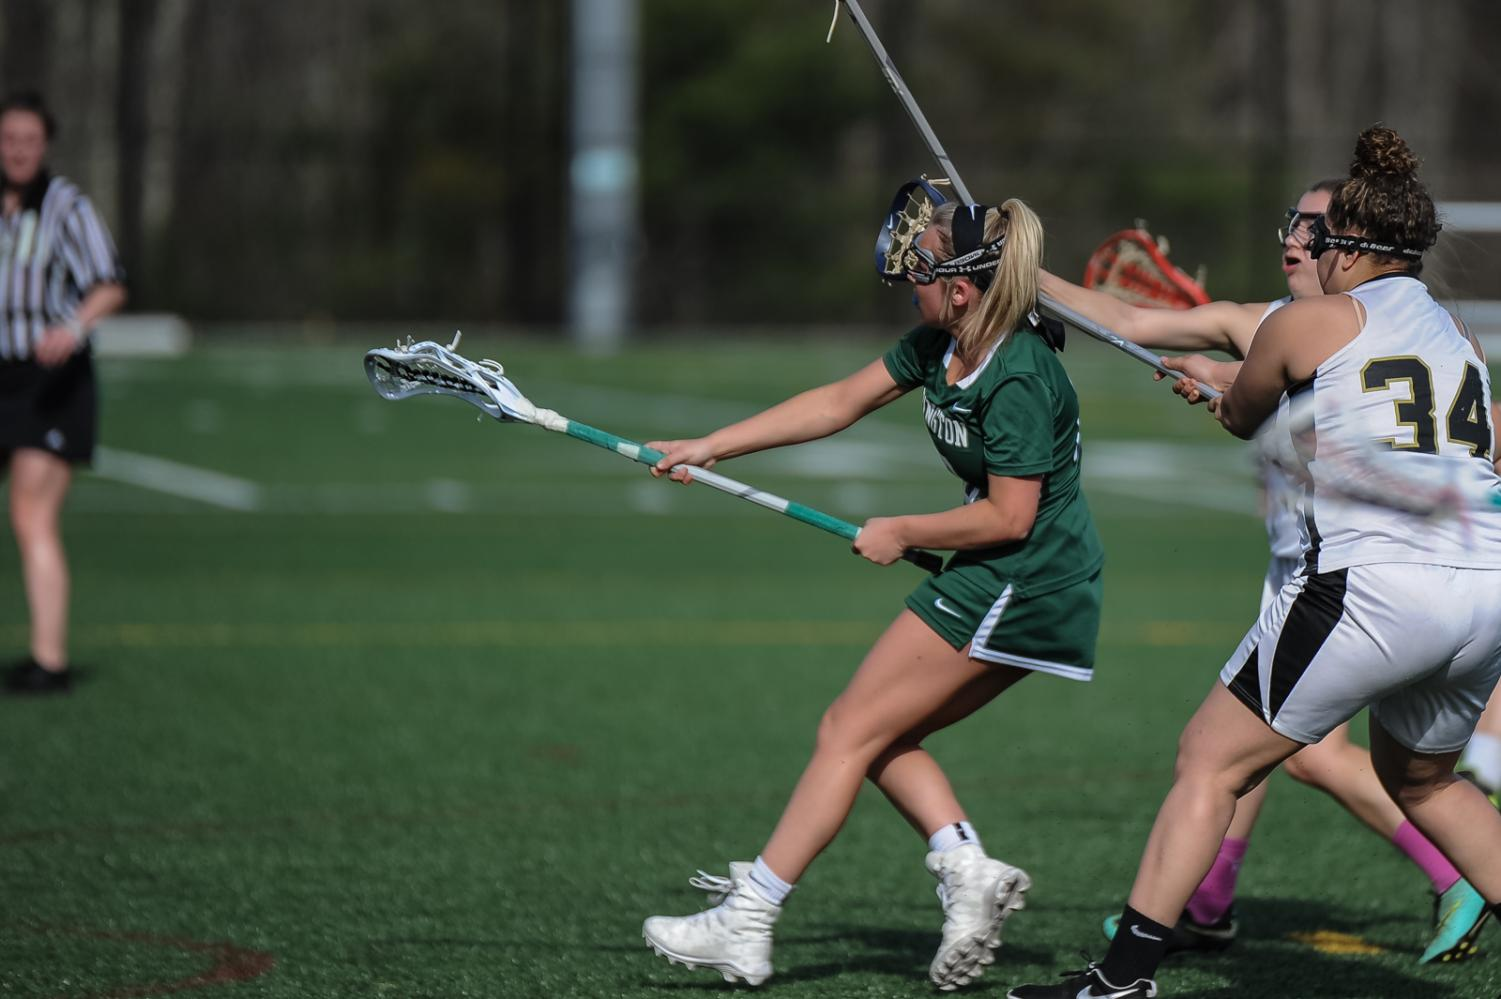 Courtney McCabe '18 scores her 200th career goal.